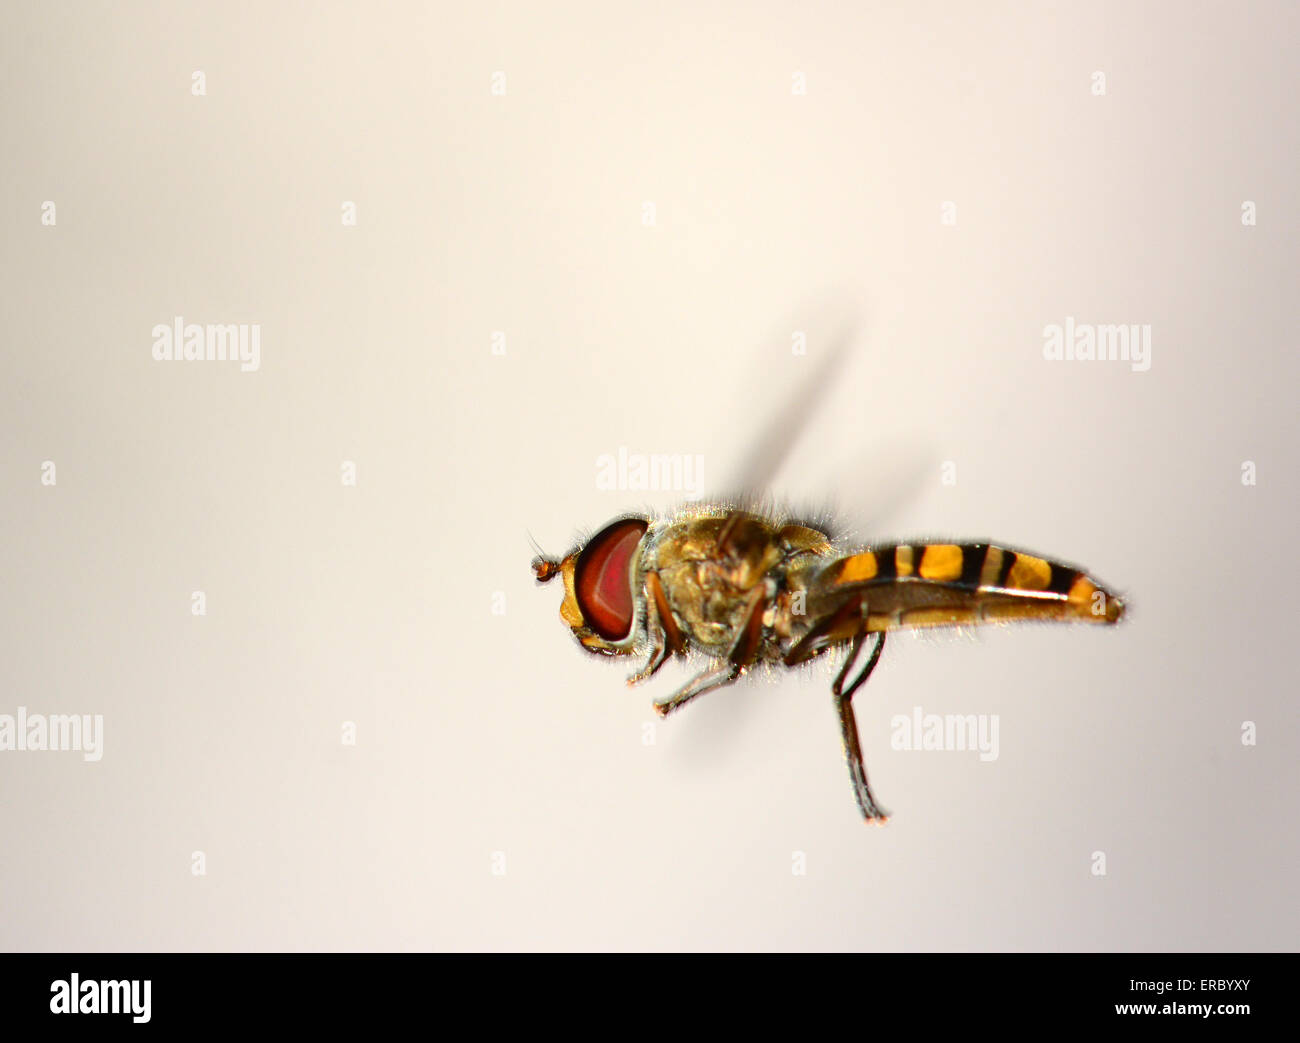 Hover fly in flight - Stock Image